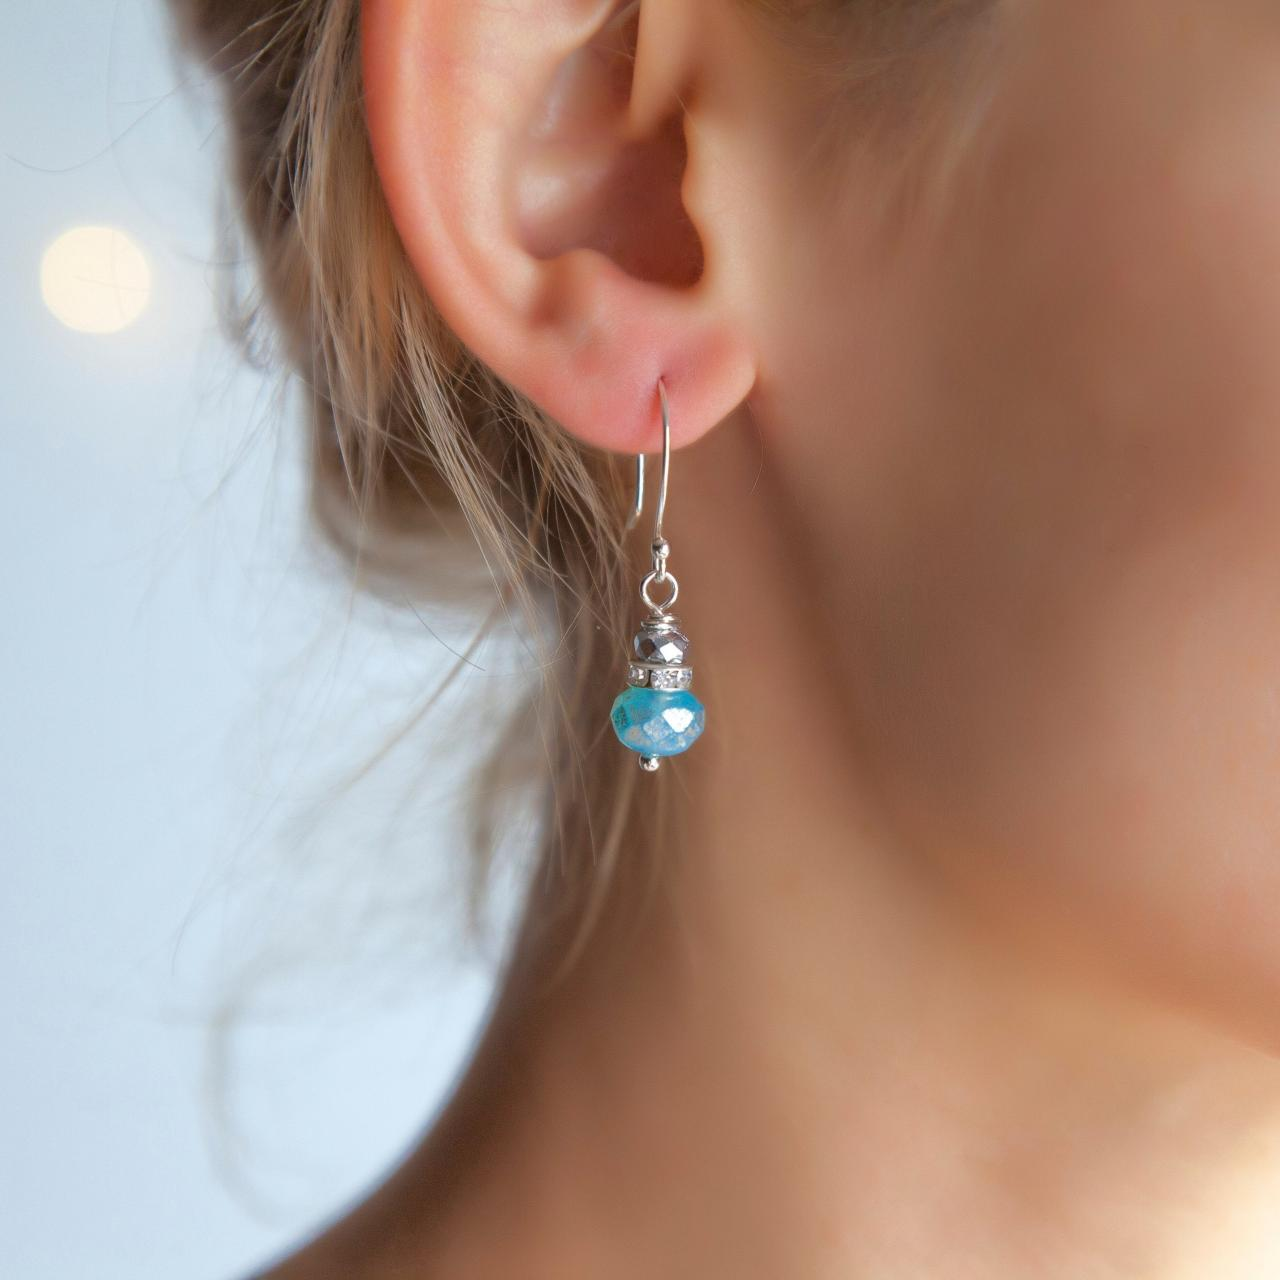 Small Sparkly Silver Blue Earrings